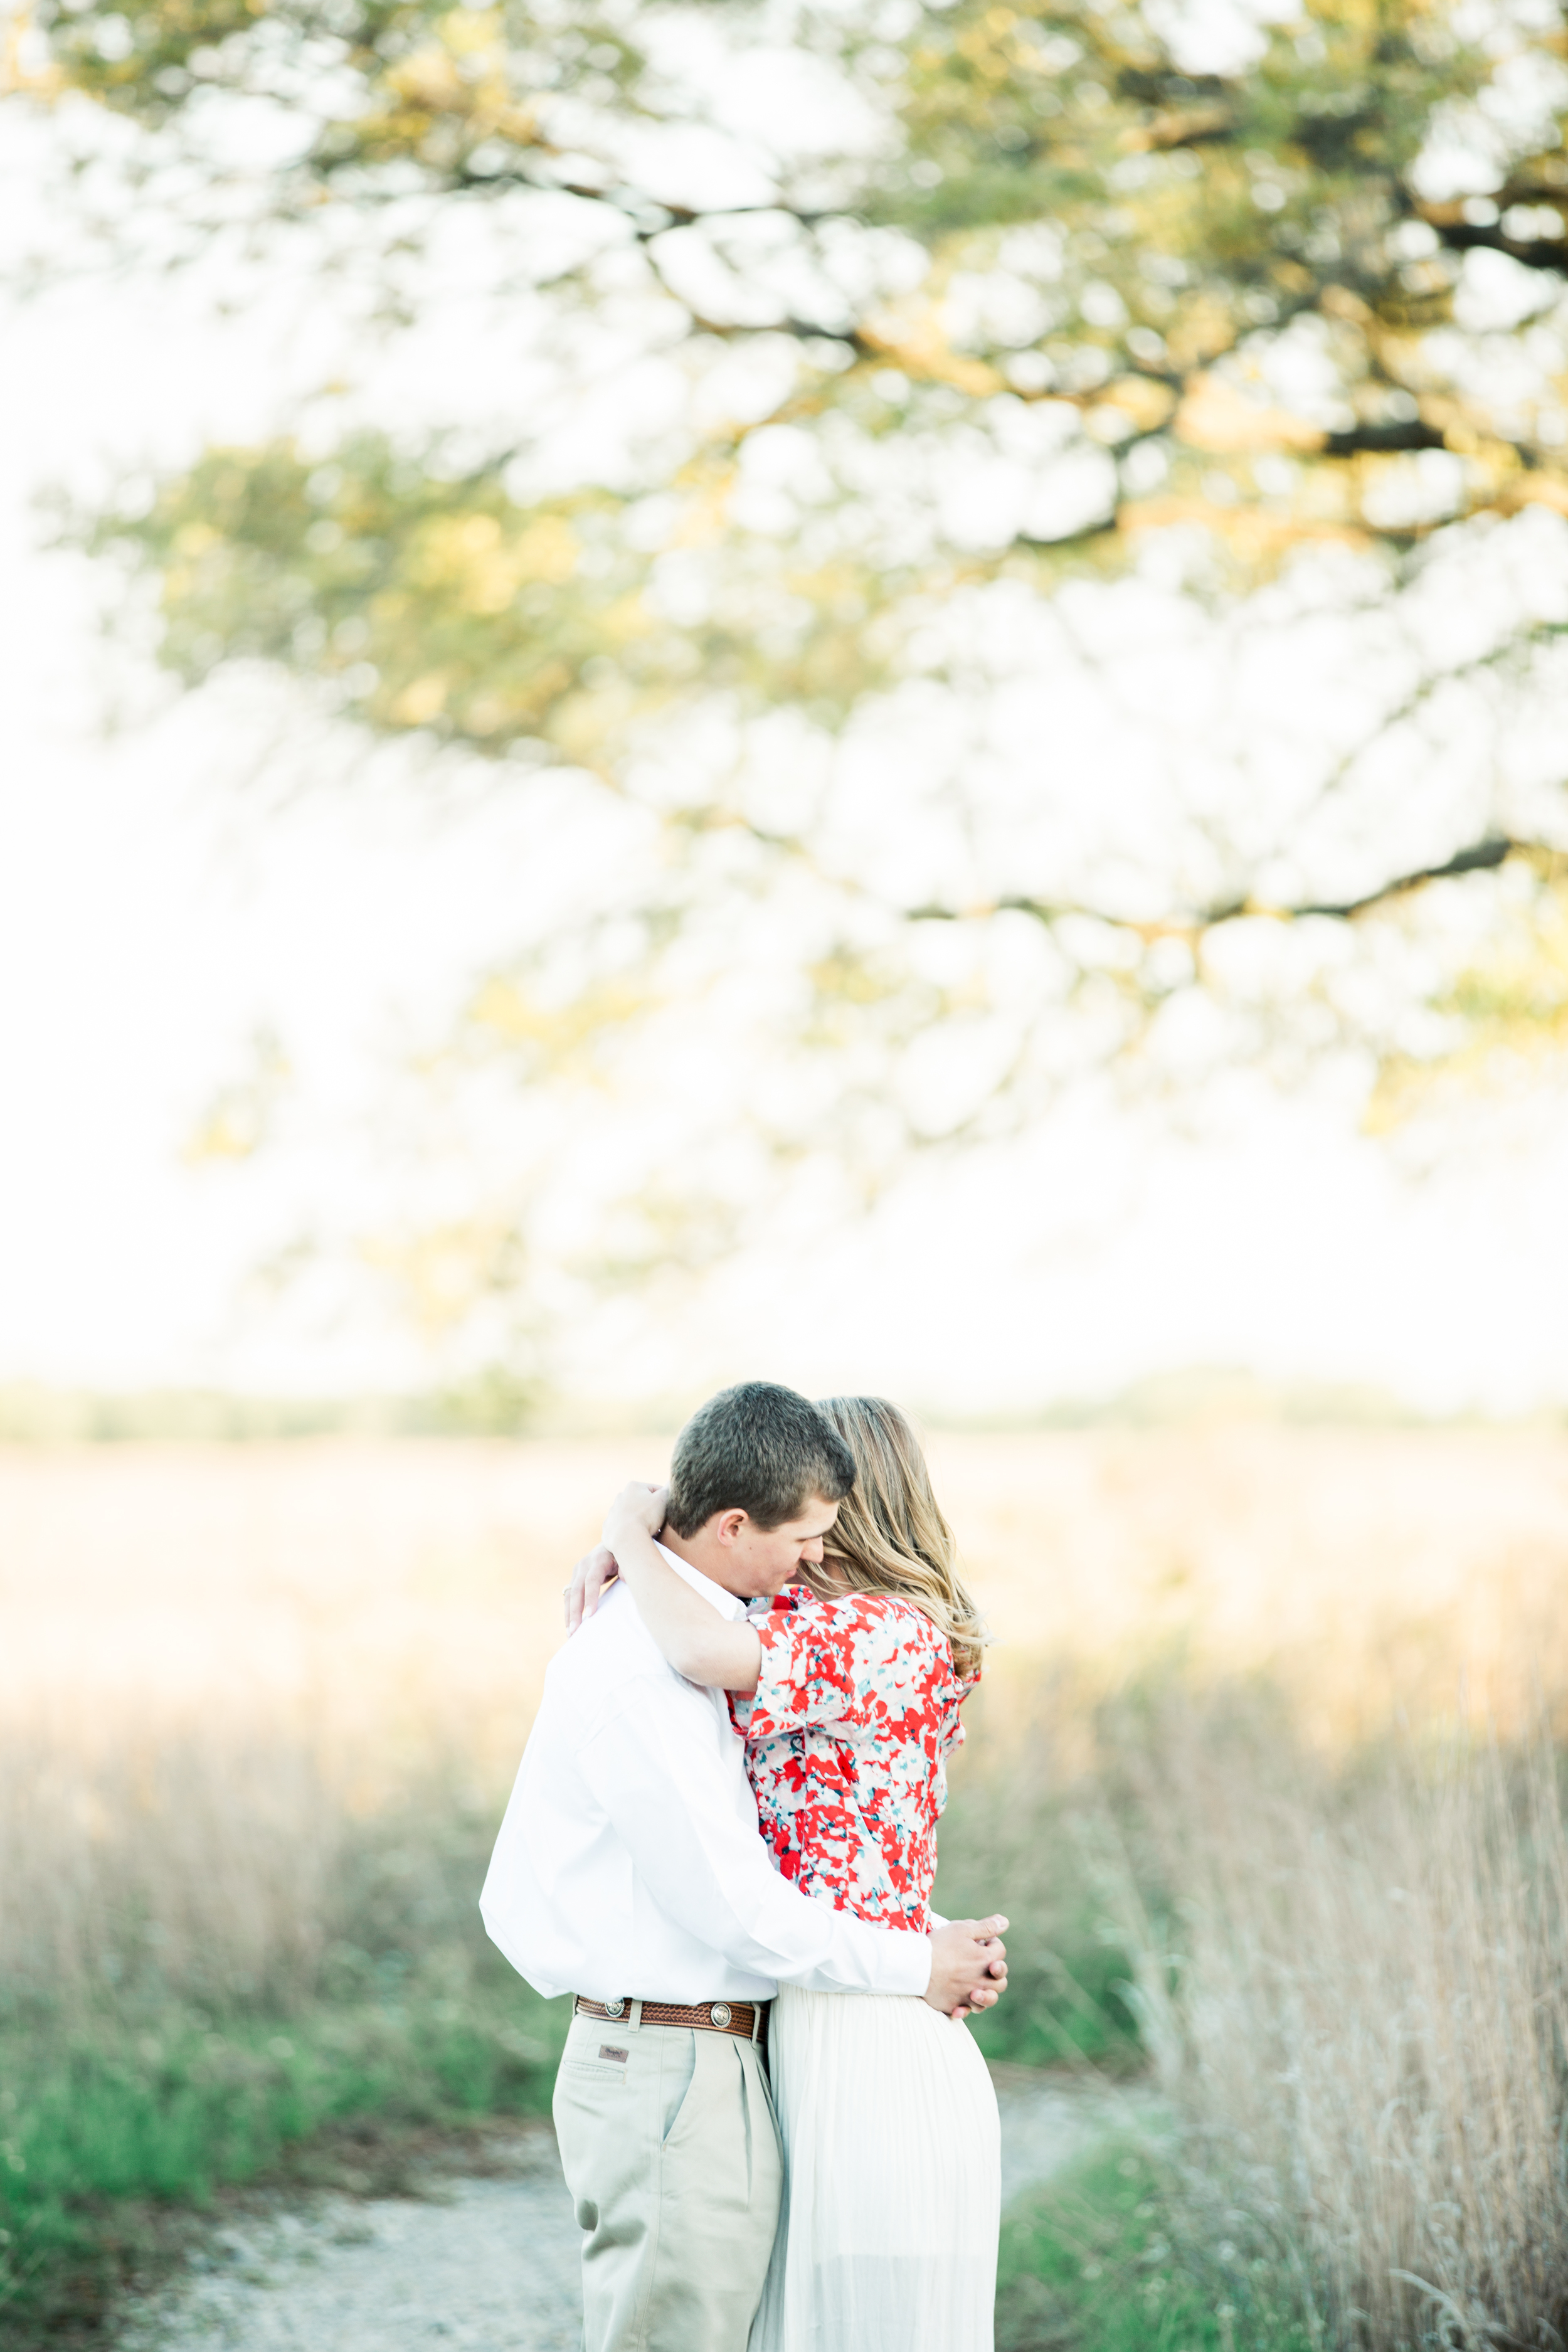 Joines_EngagementCollection-13.jpg